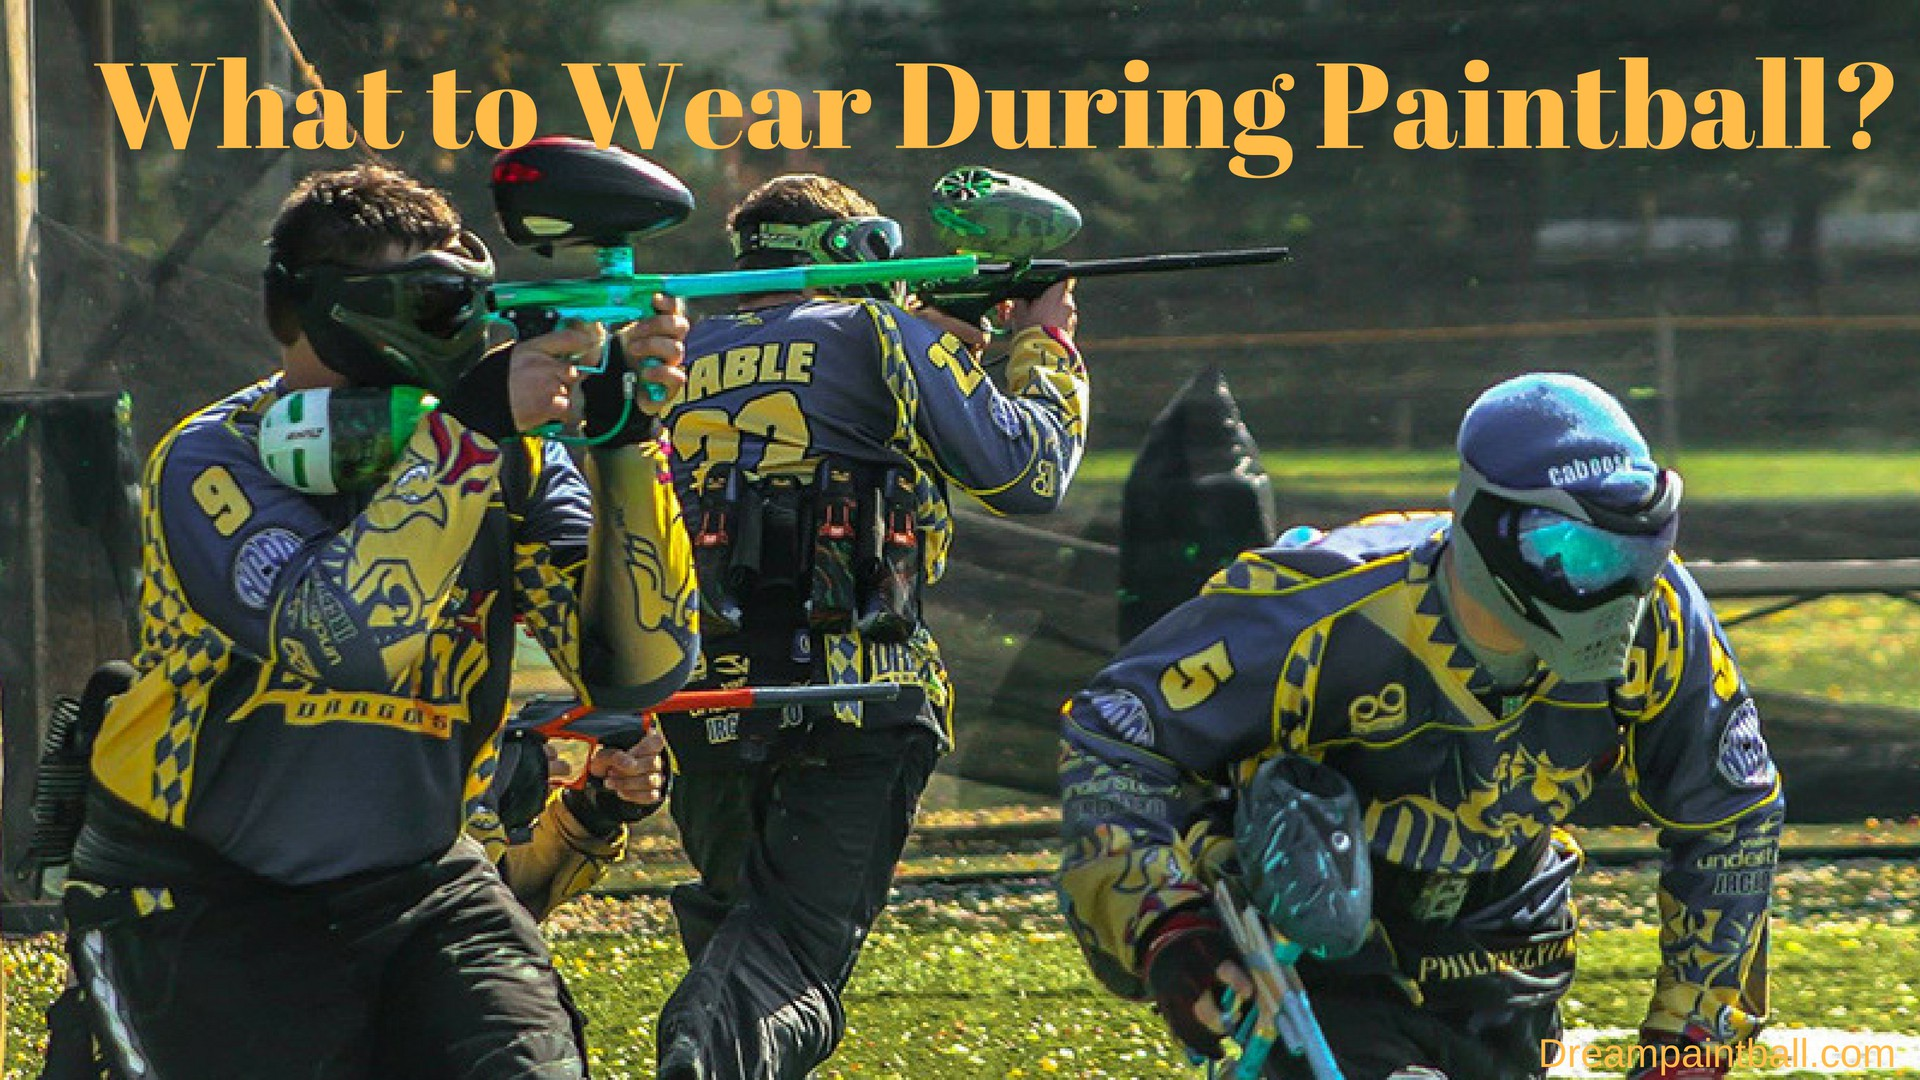 What to Wear During Paintball